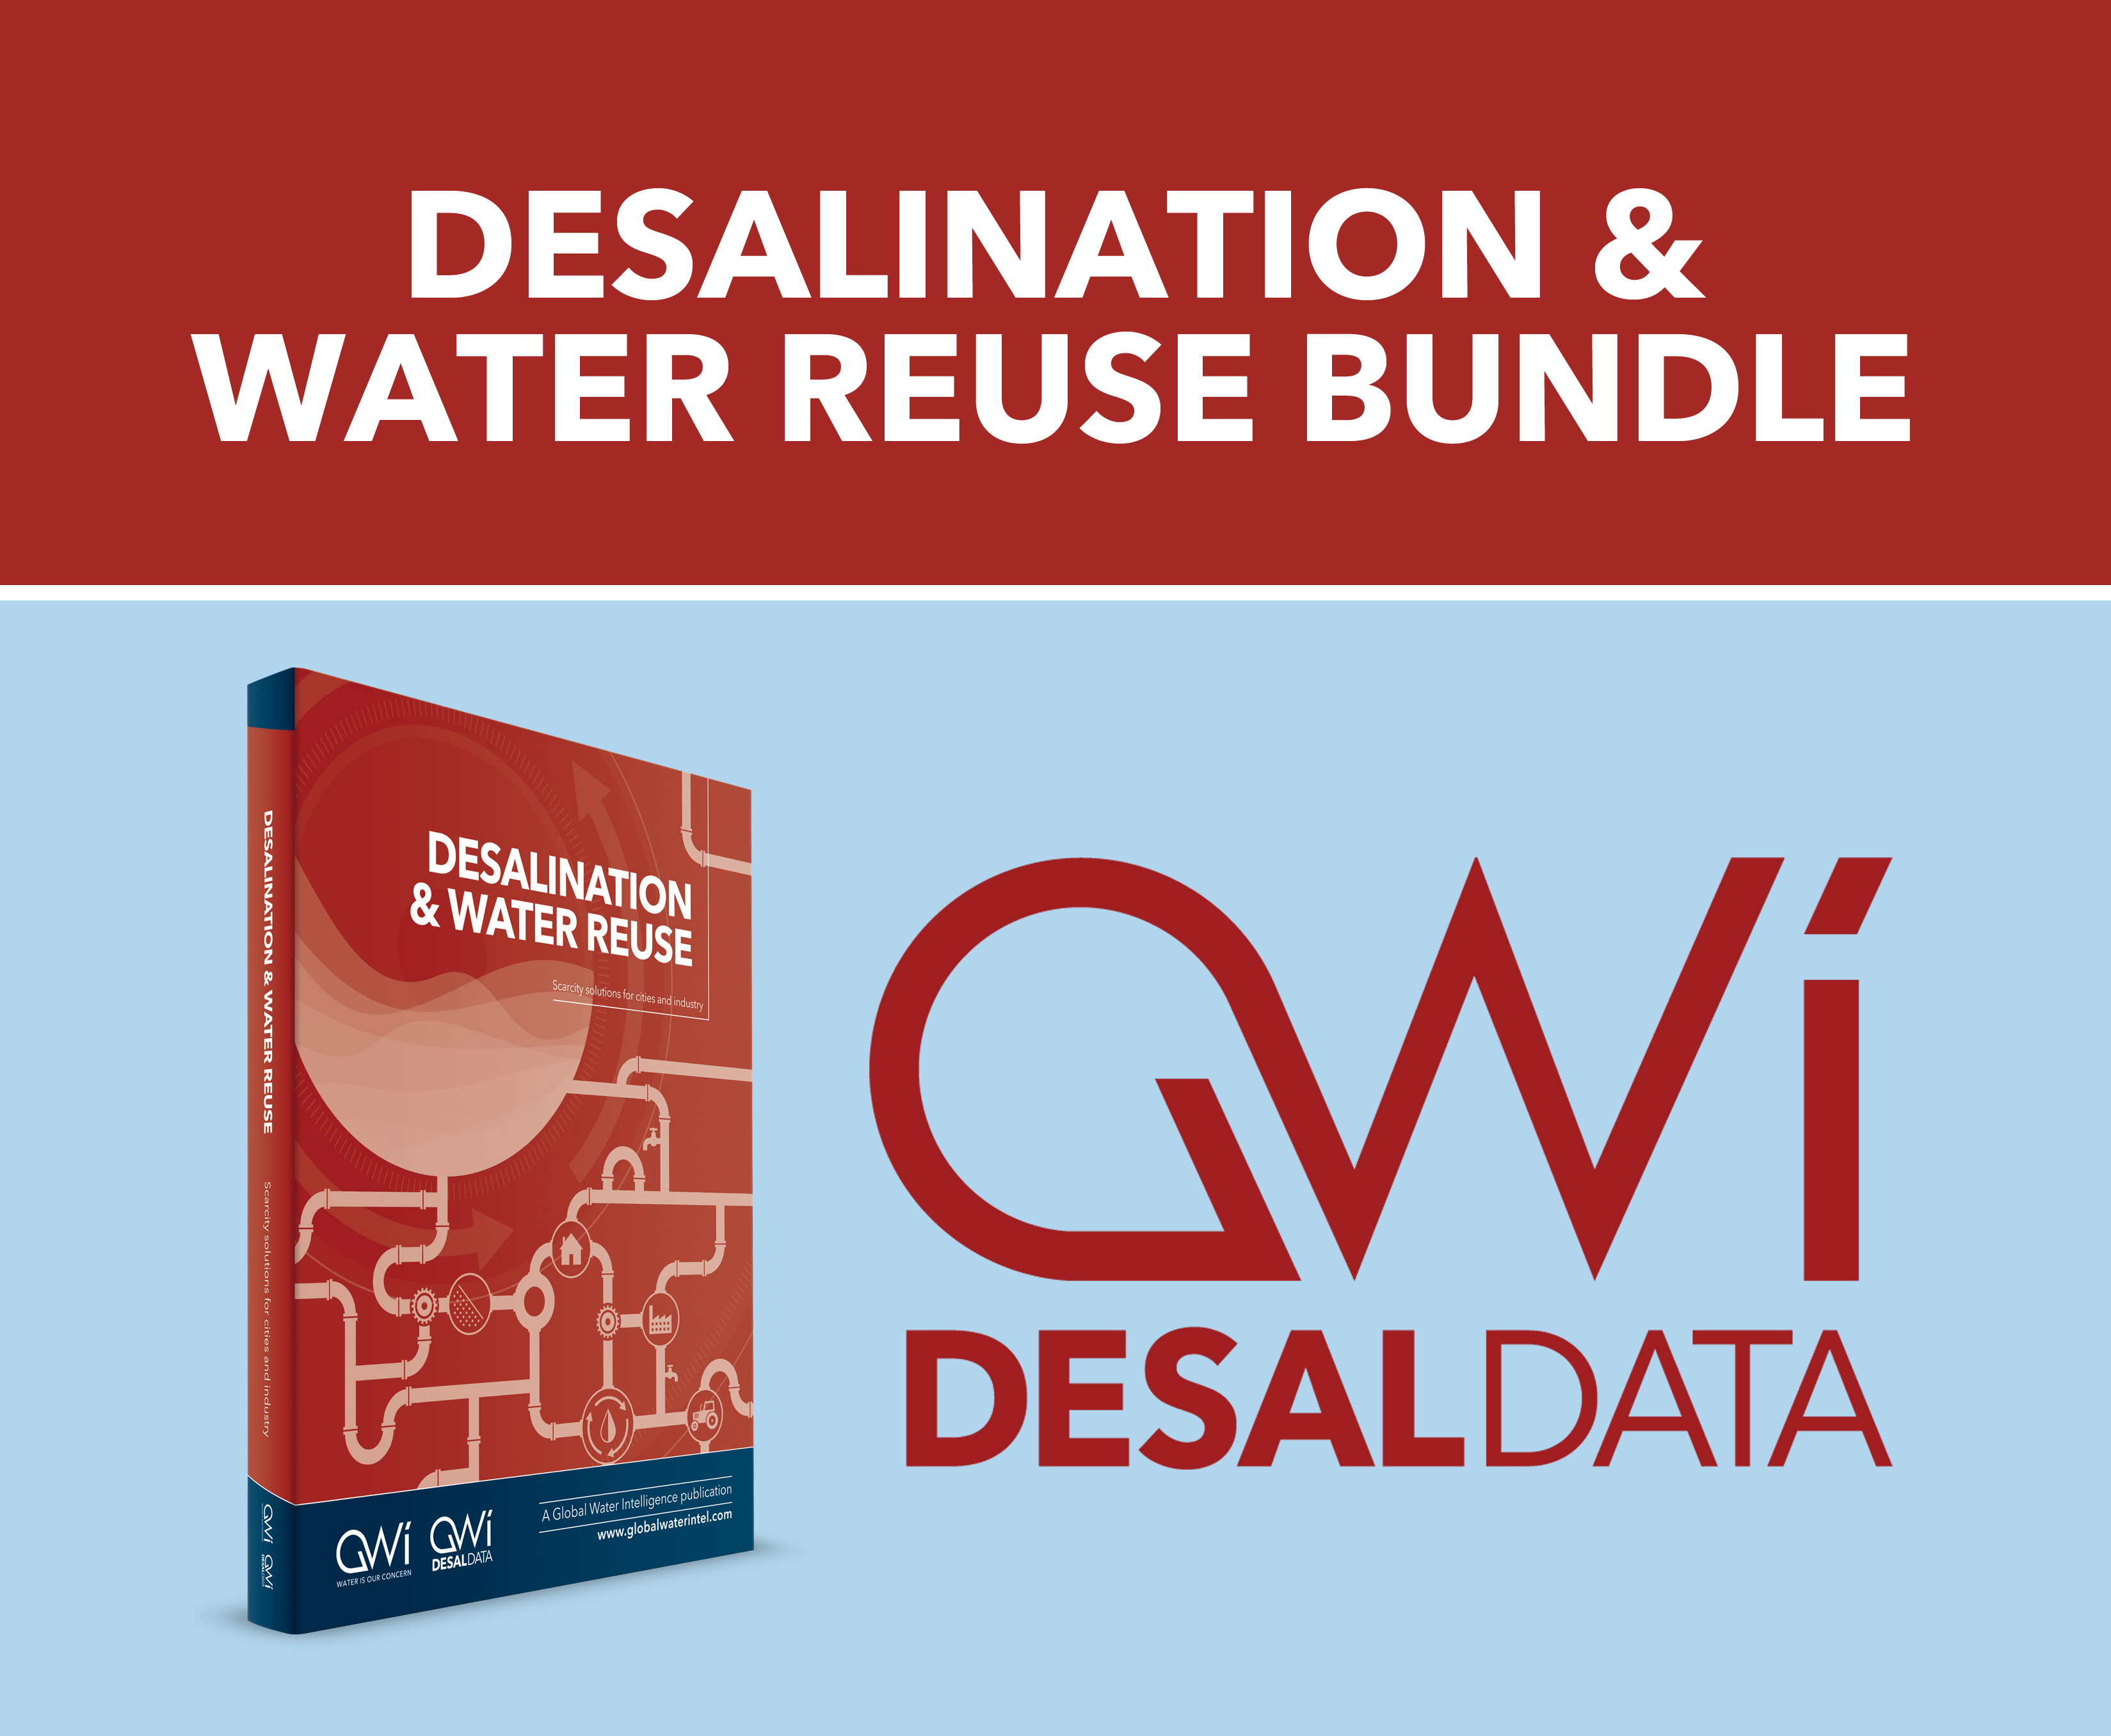 Desalination & Water Reuse Bundle